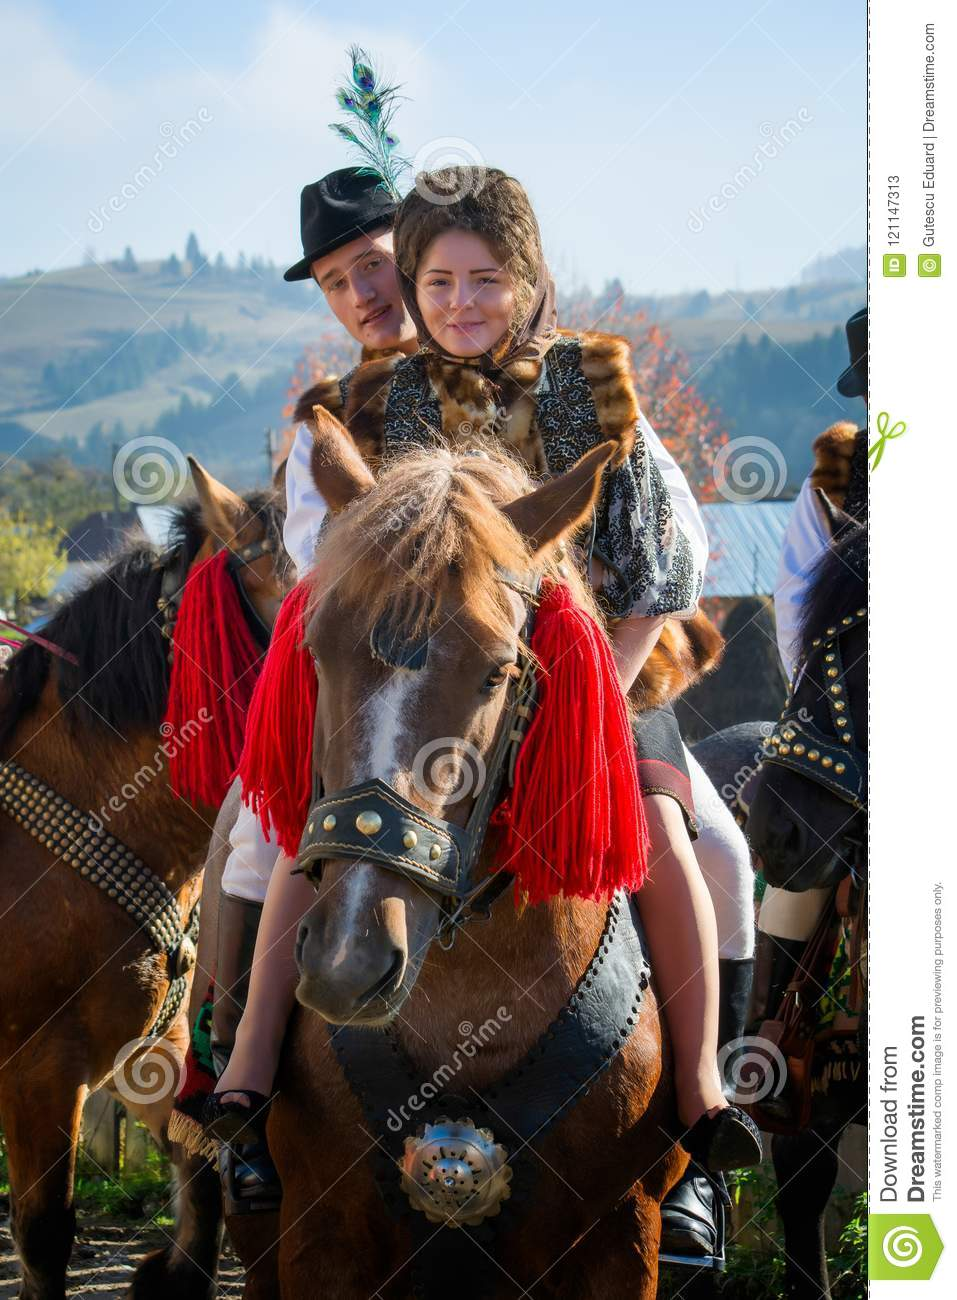 Romanian traditional costume in Bucovina county on celebration time